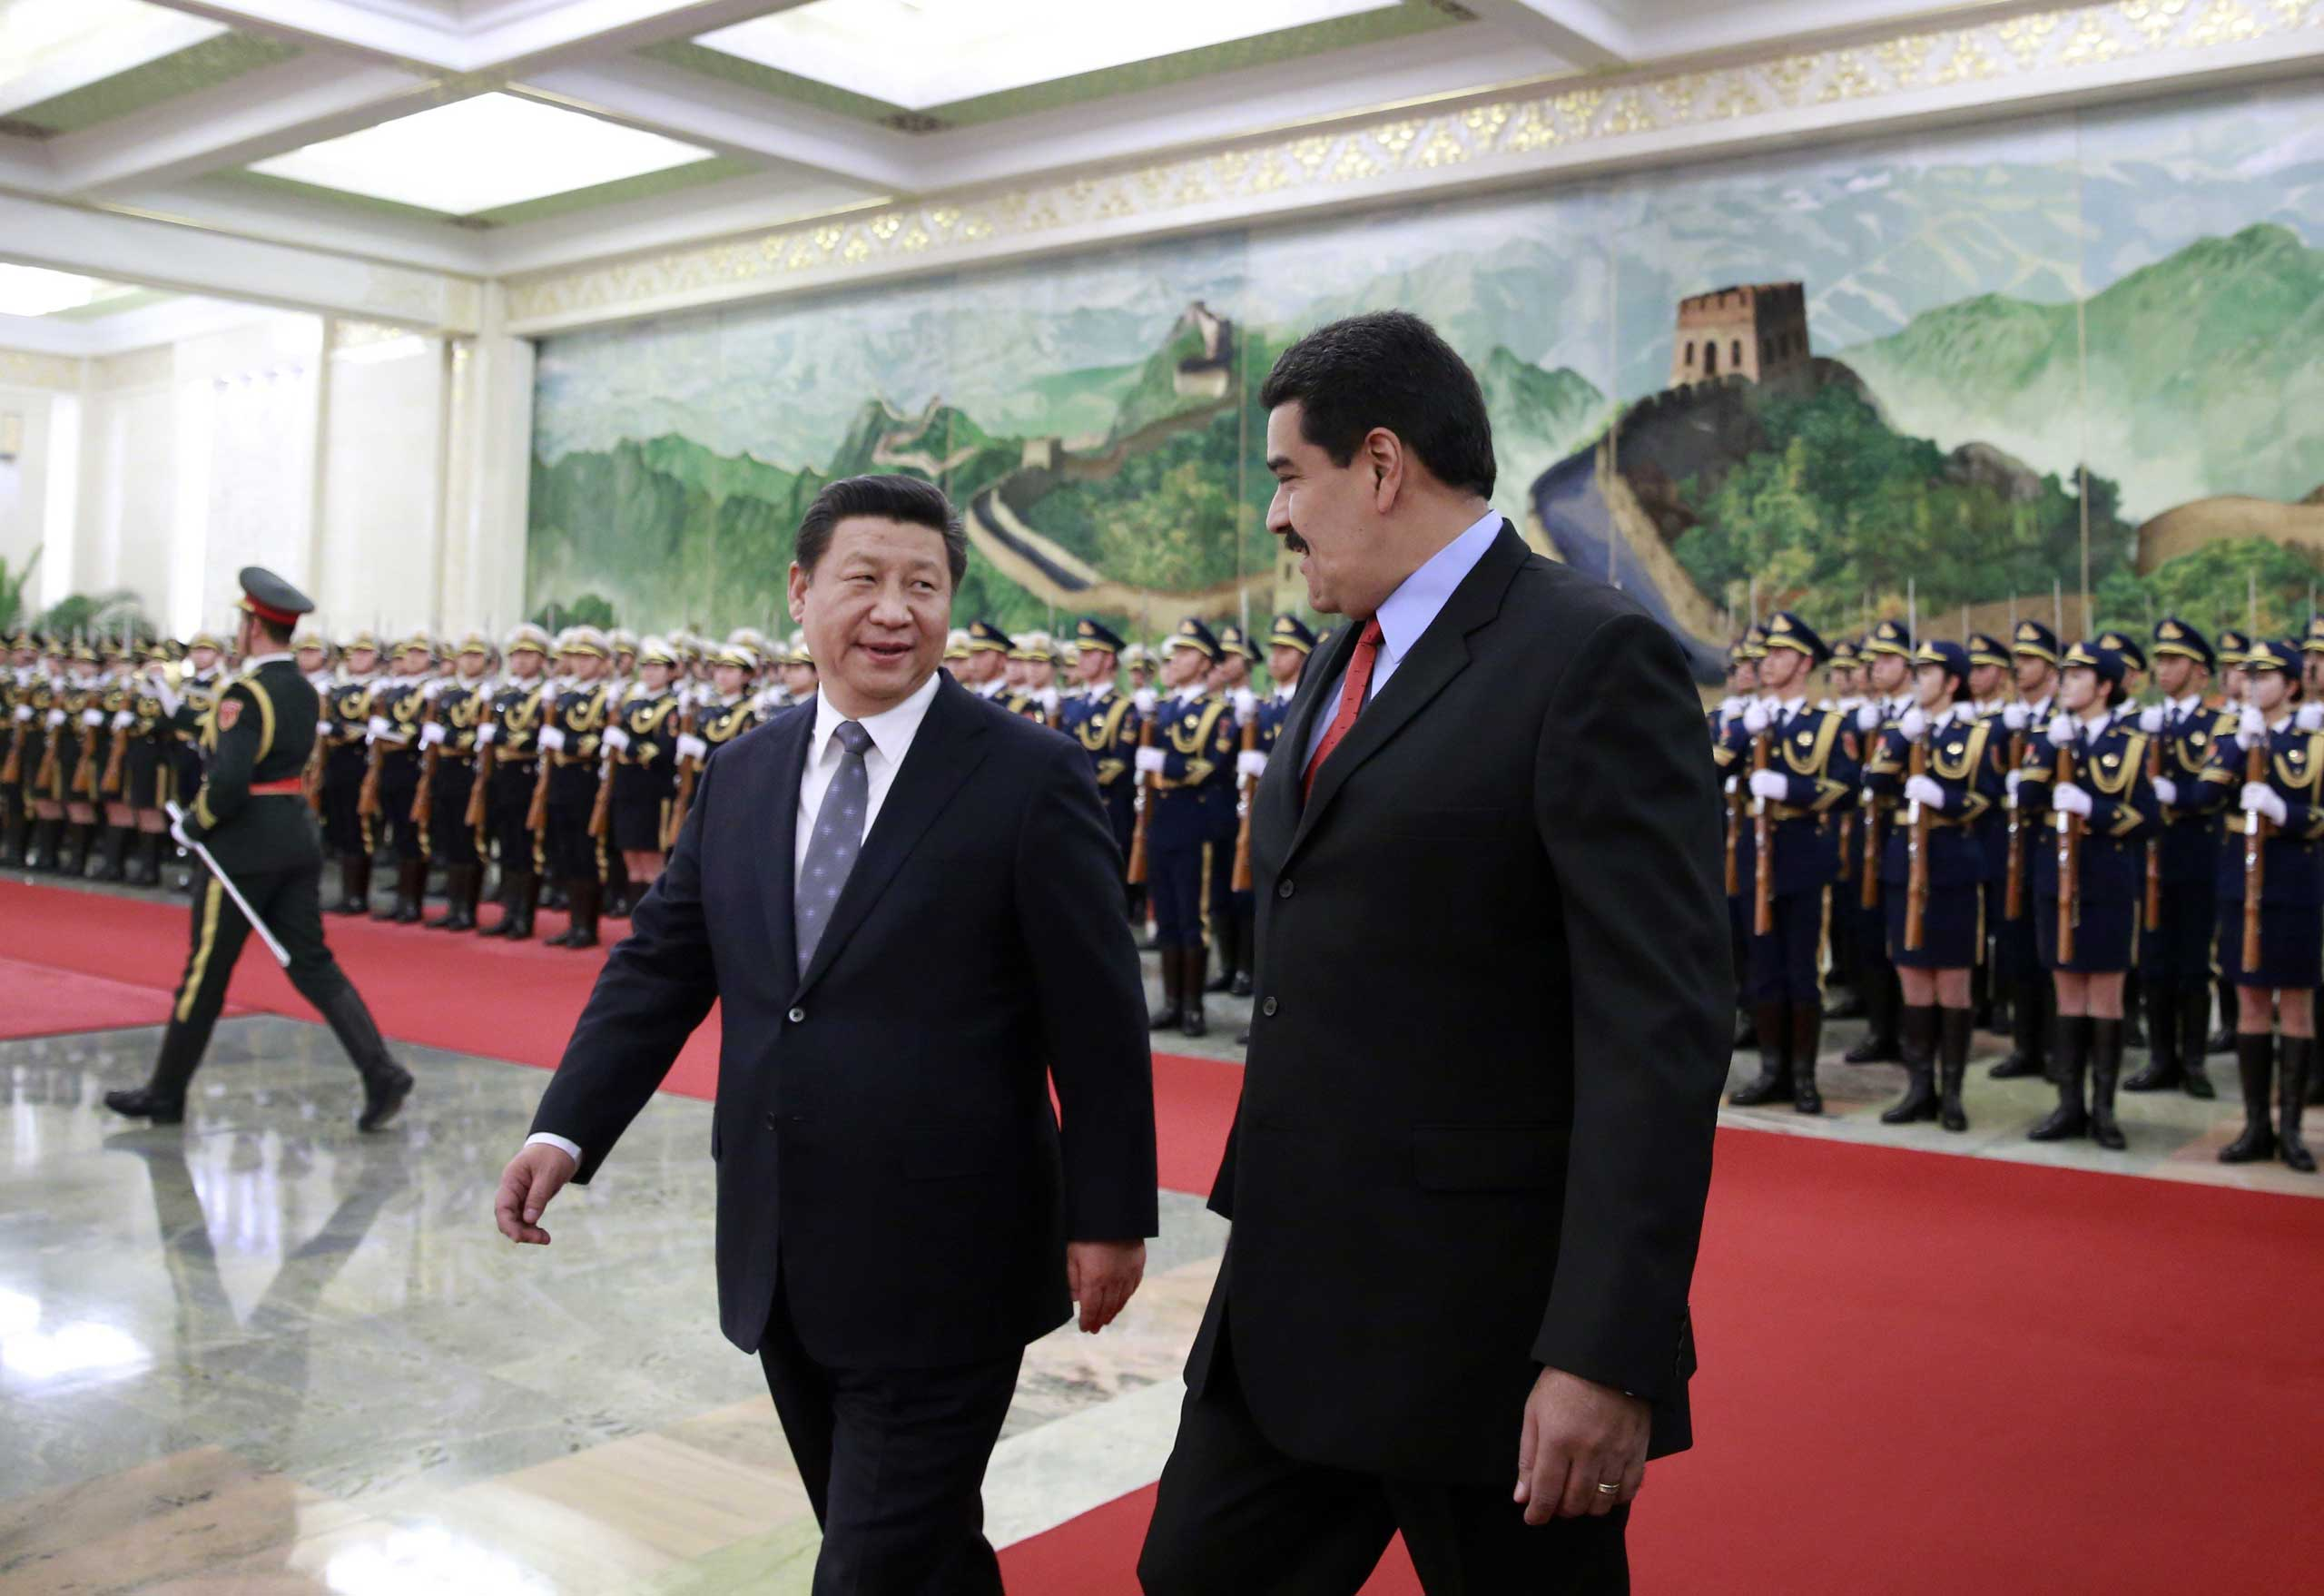 Venezuela's President Nicolas Maduro and Chinese President Xi Jinping chat after reviewing an honor guard during a welcome ceremony at the Great Hall of the People in Beijing on Jan. 7, 2015.